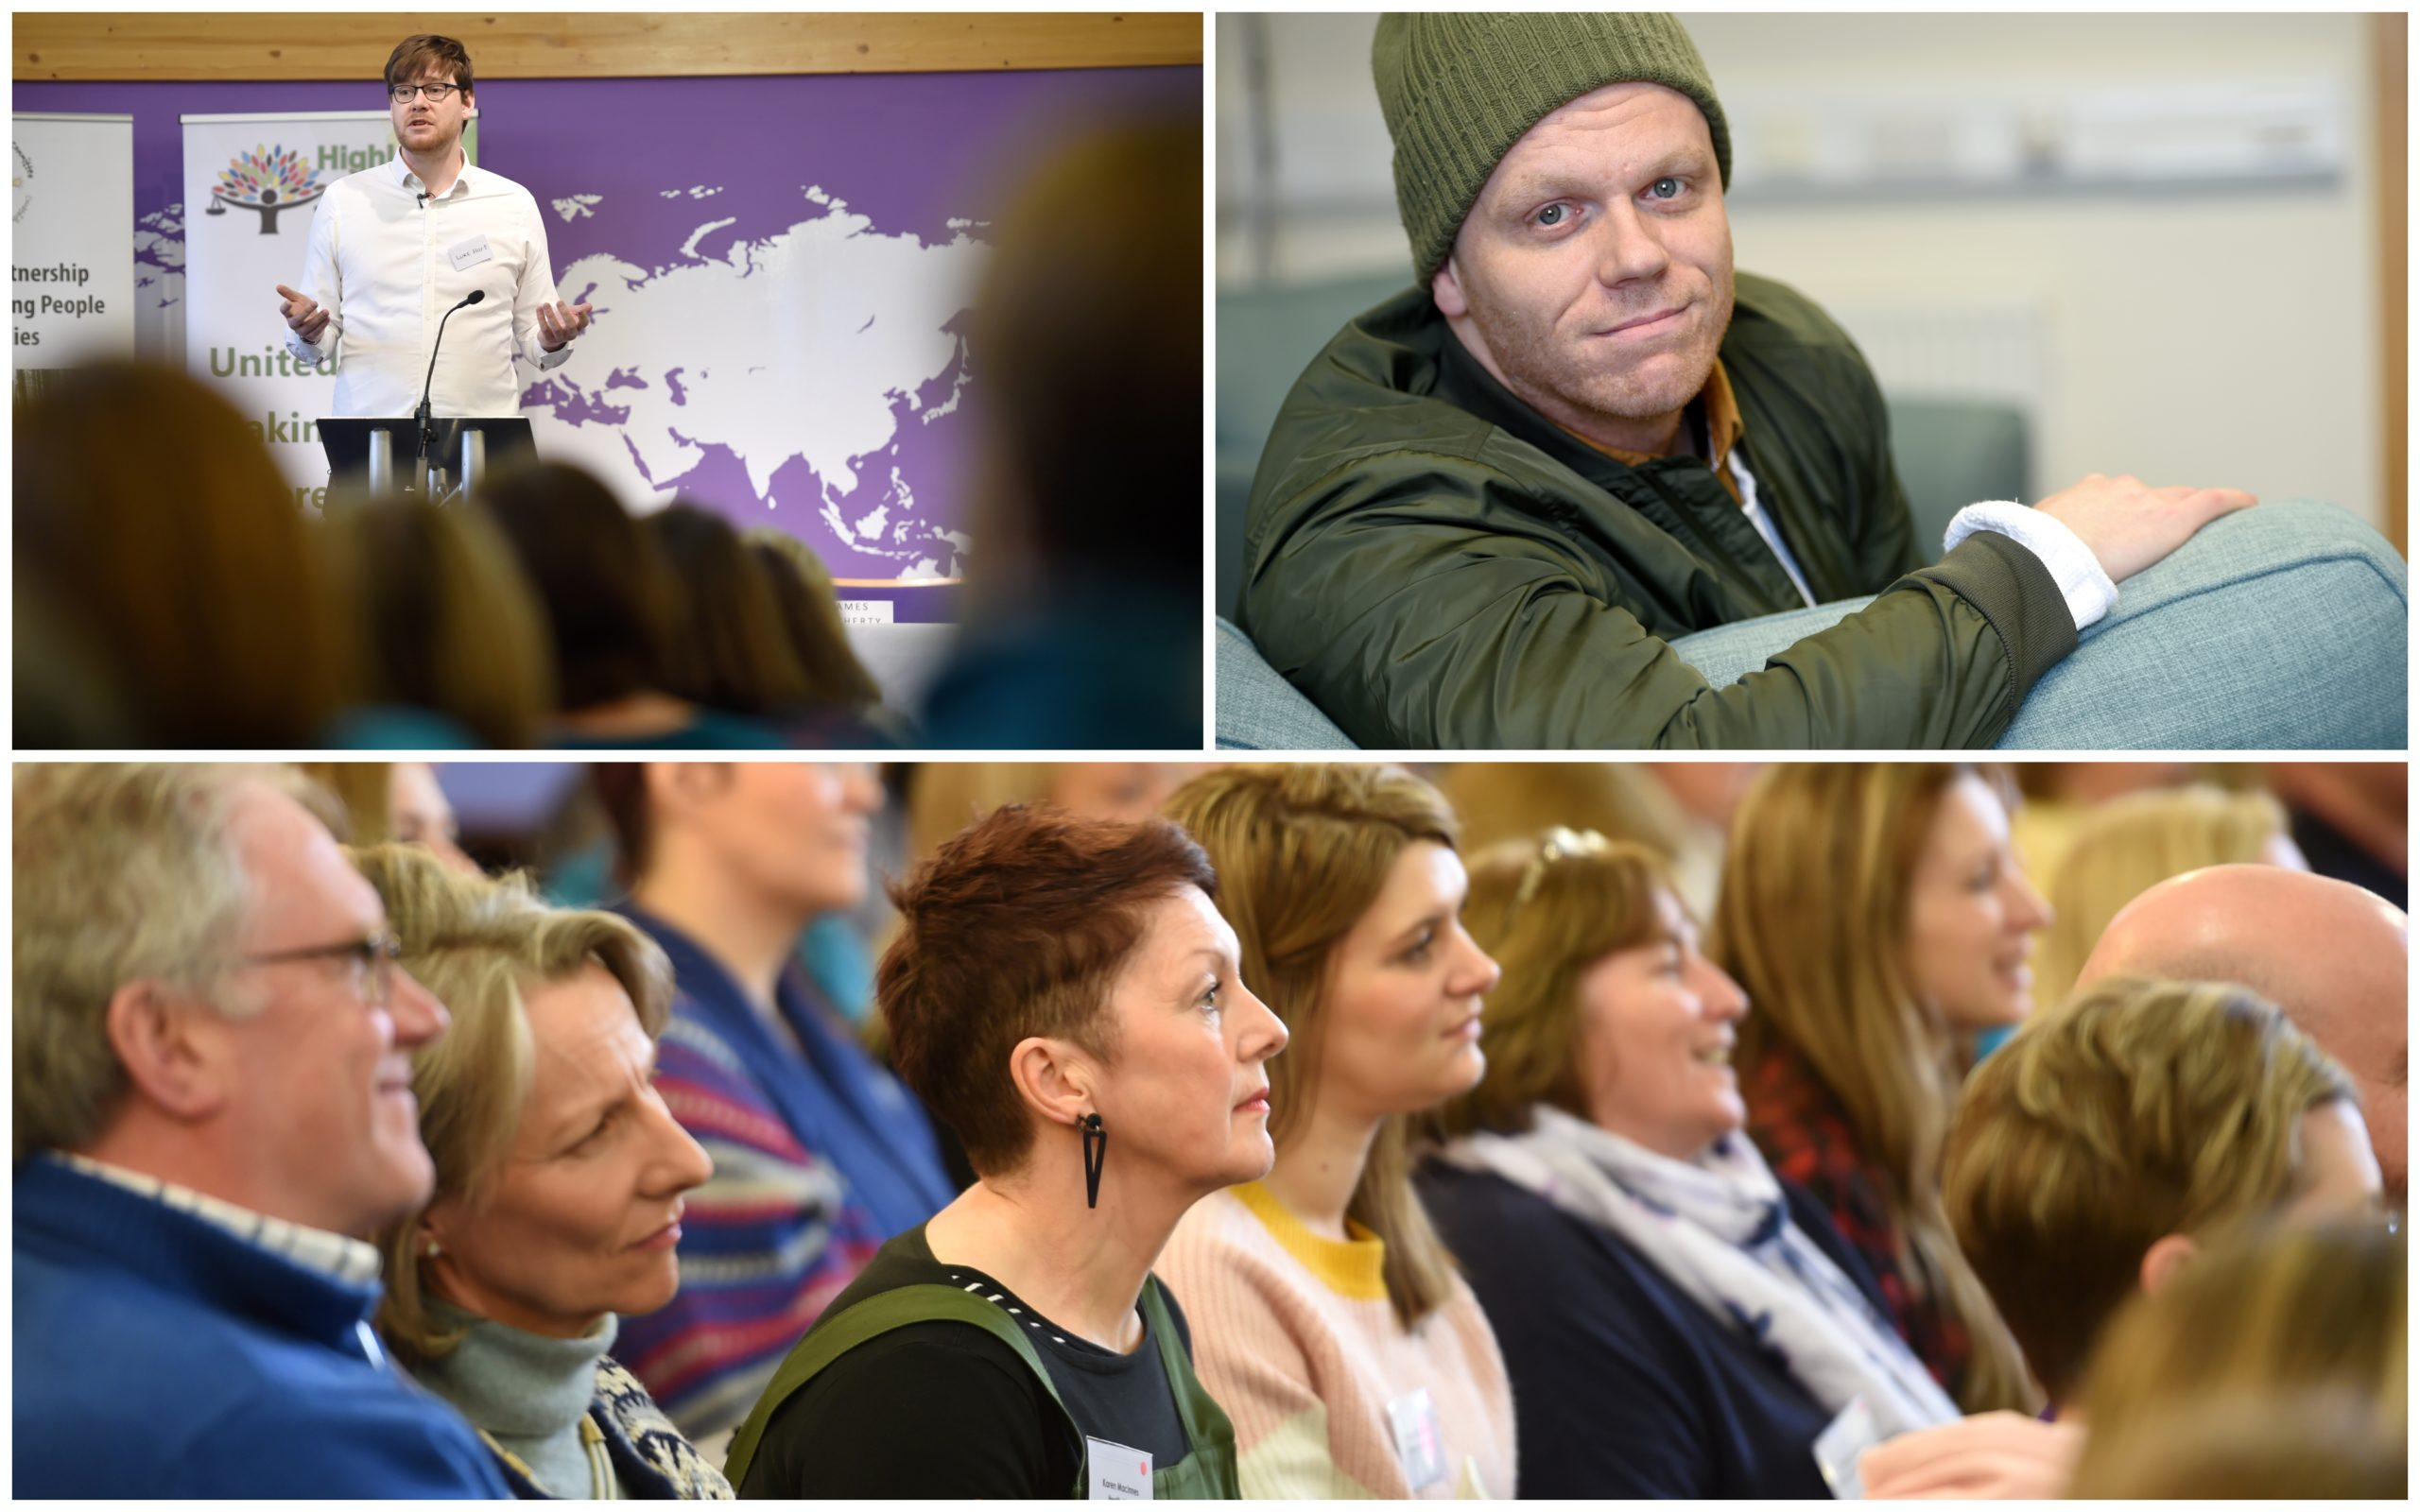 Luke Hart, top left, and Darren McGarvey, top right, were two of the speakers at the conference. Pictures by Sandy McCook